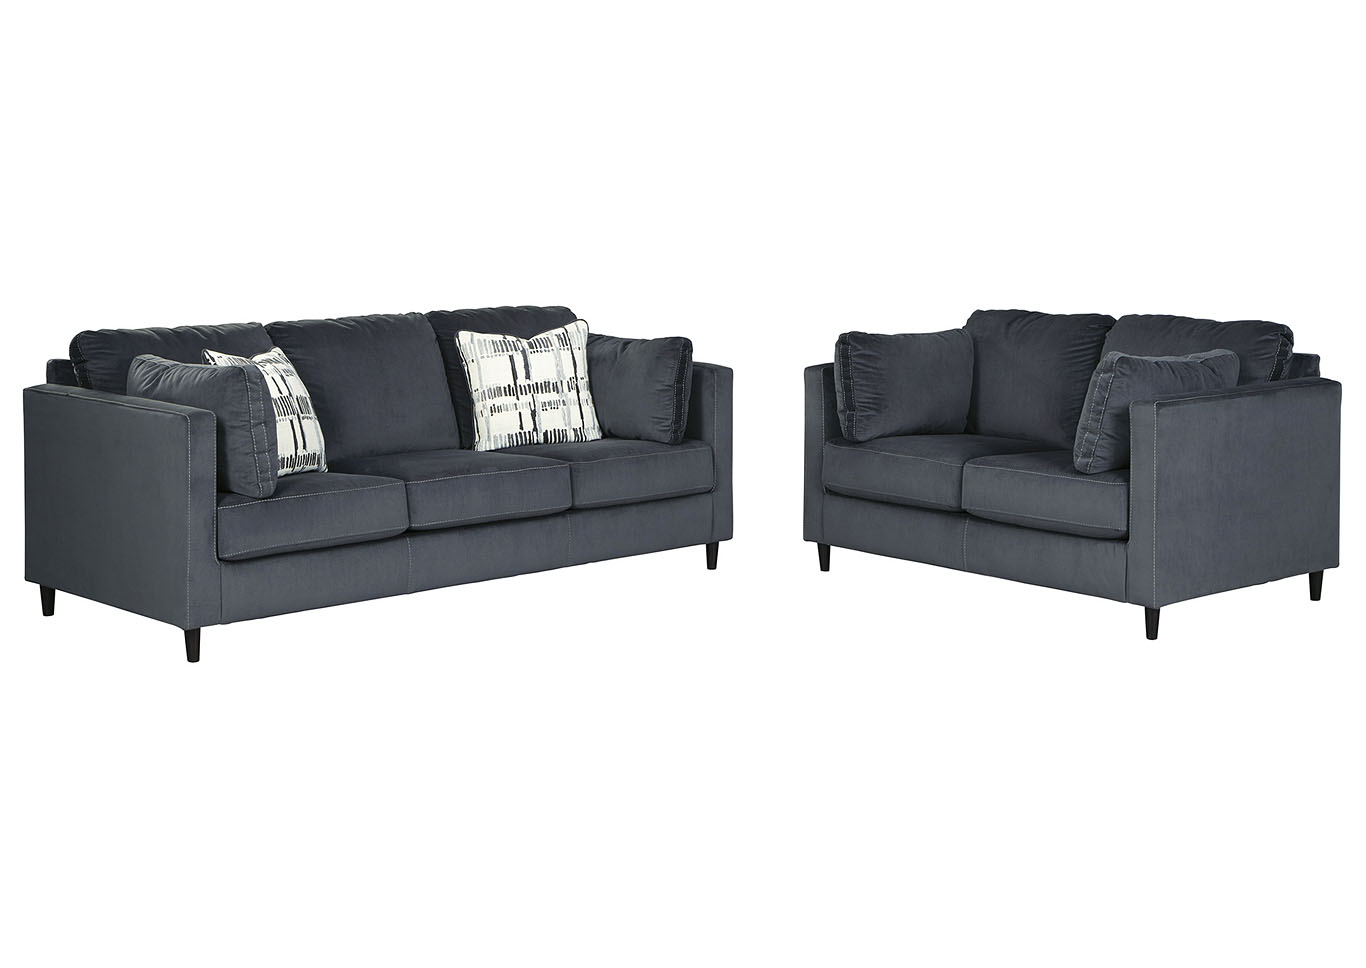 Kennewick Sofa and Loveseat